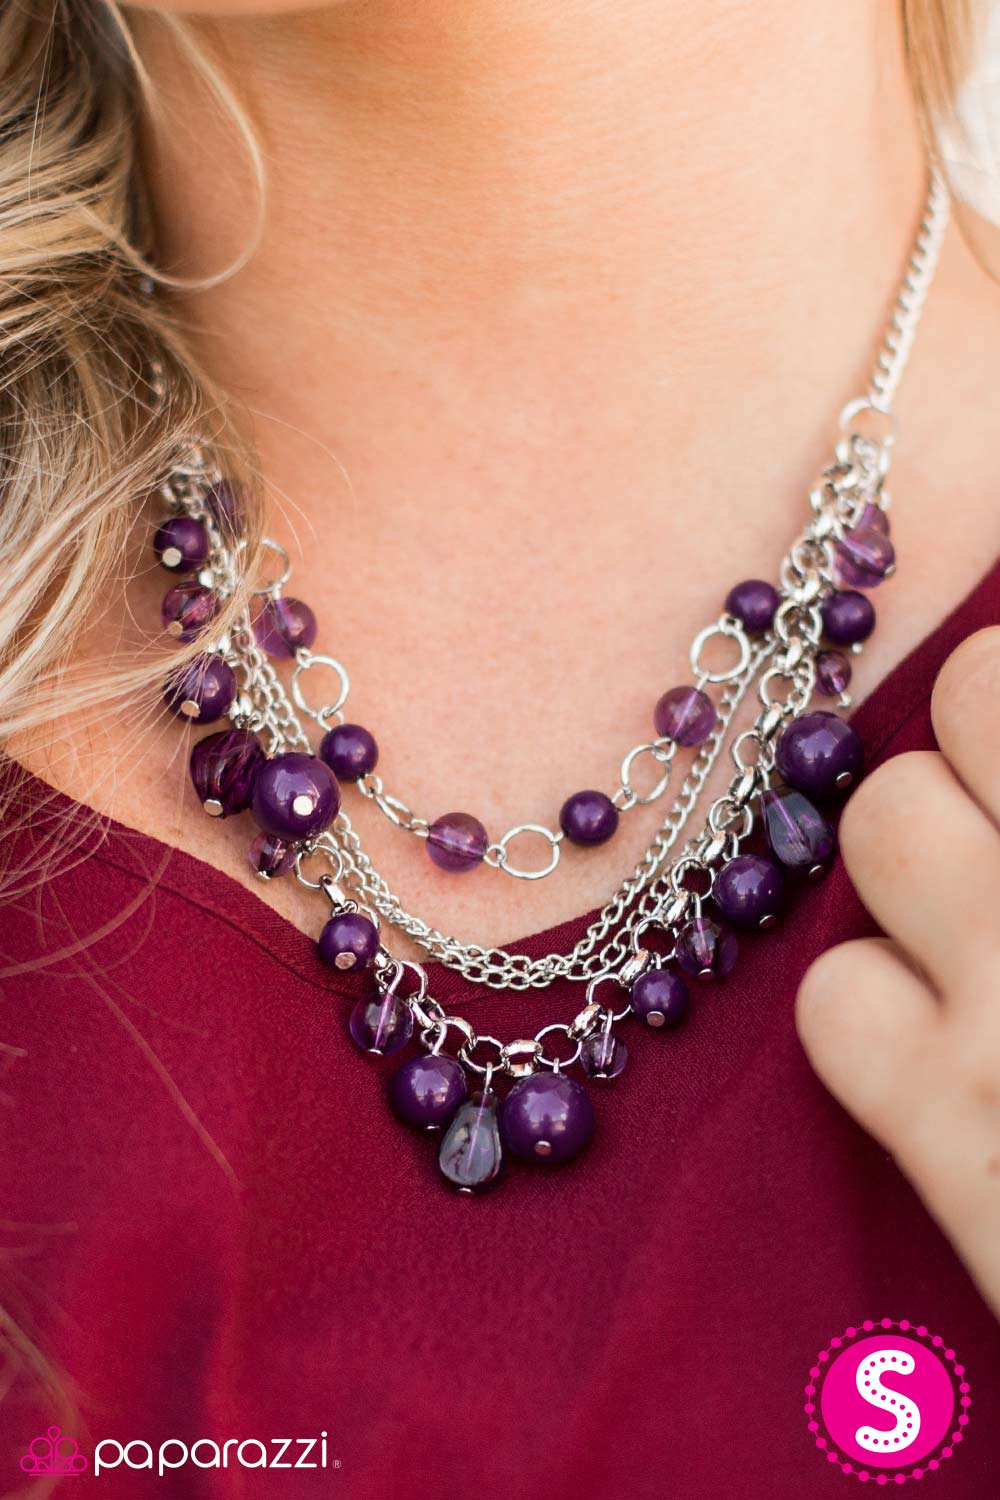 Pretty Promenade - Paparazzi necklace